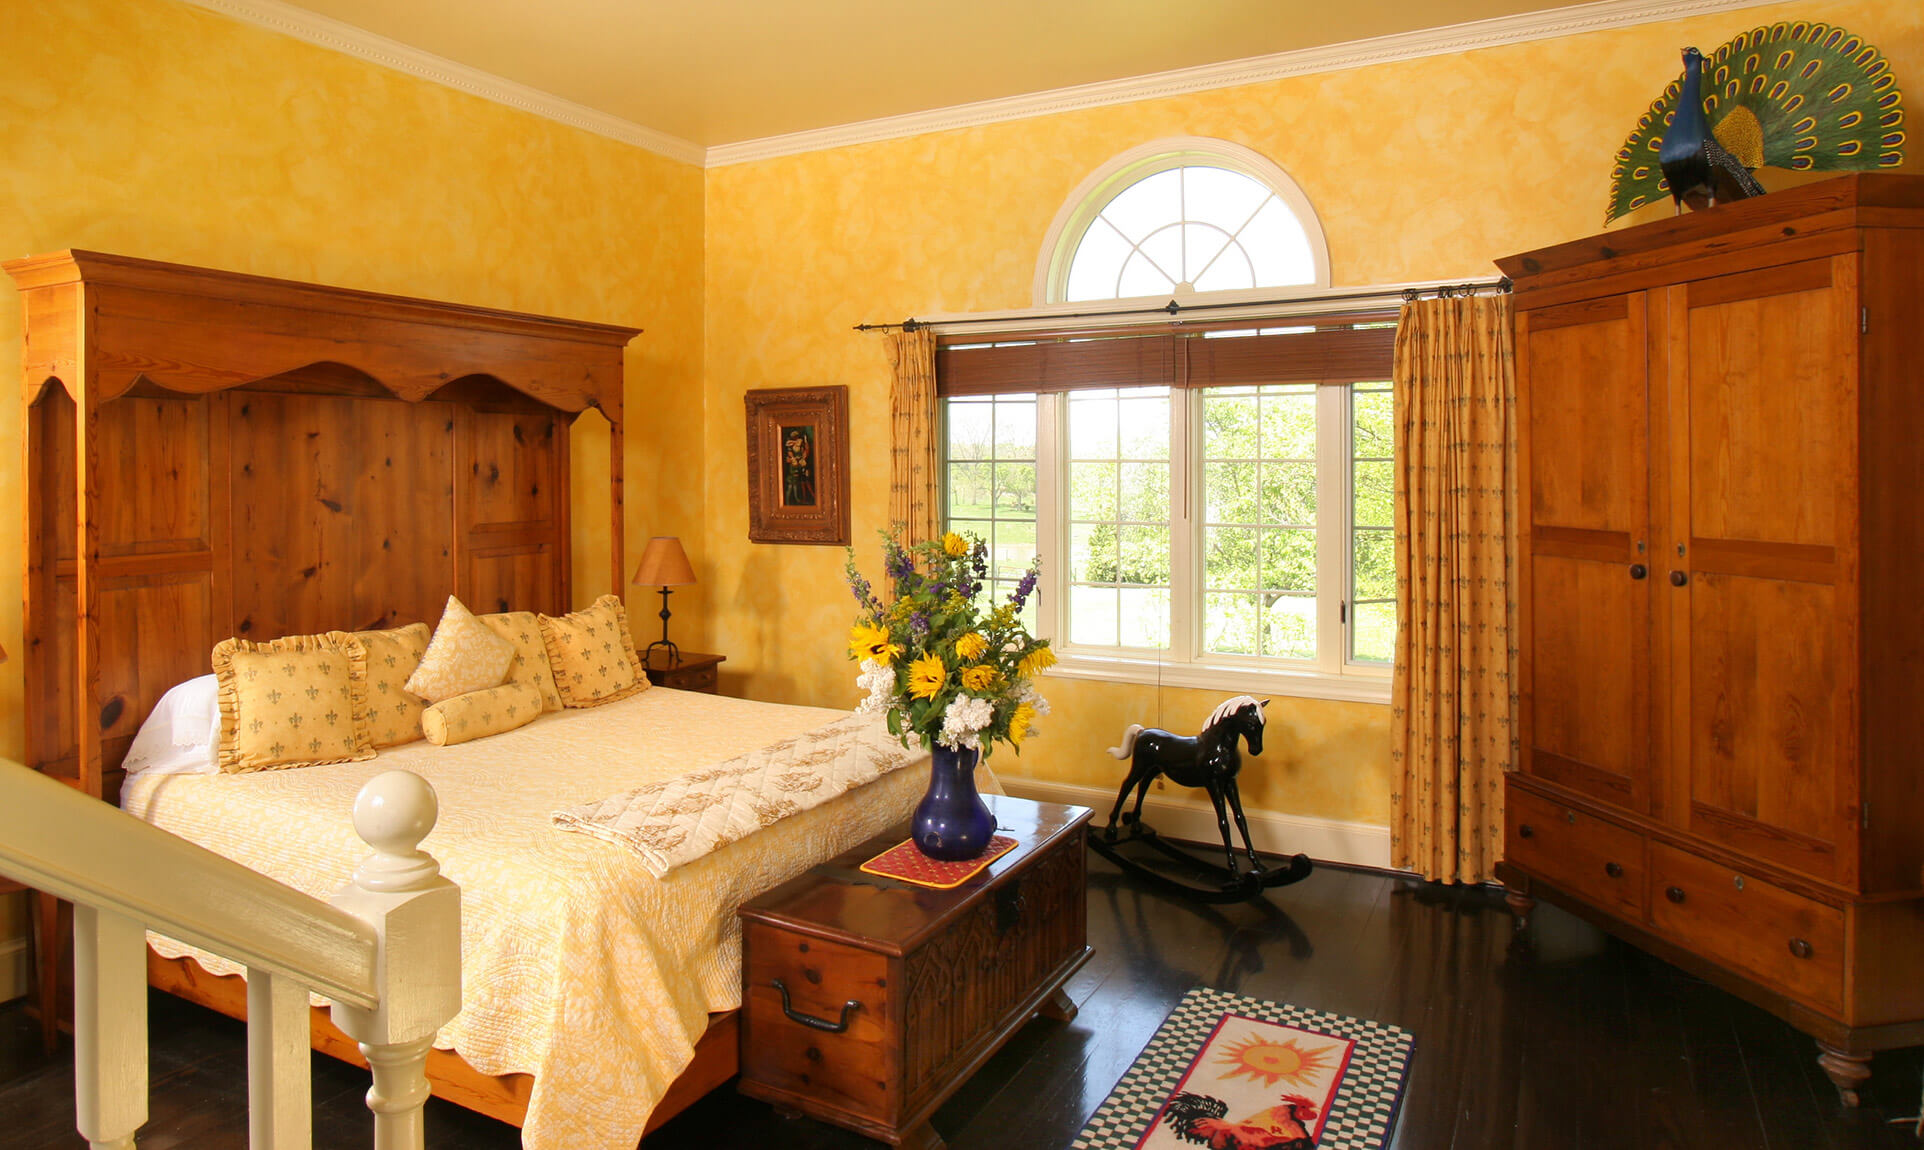 Van Gogh Suite bed at our Shenandoah Valley bed and breakfast